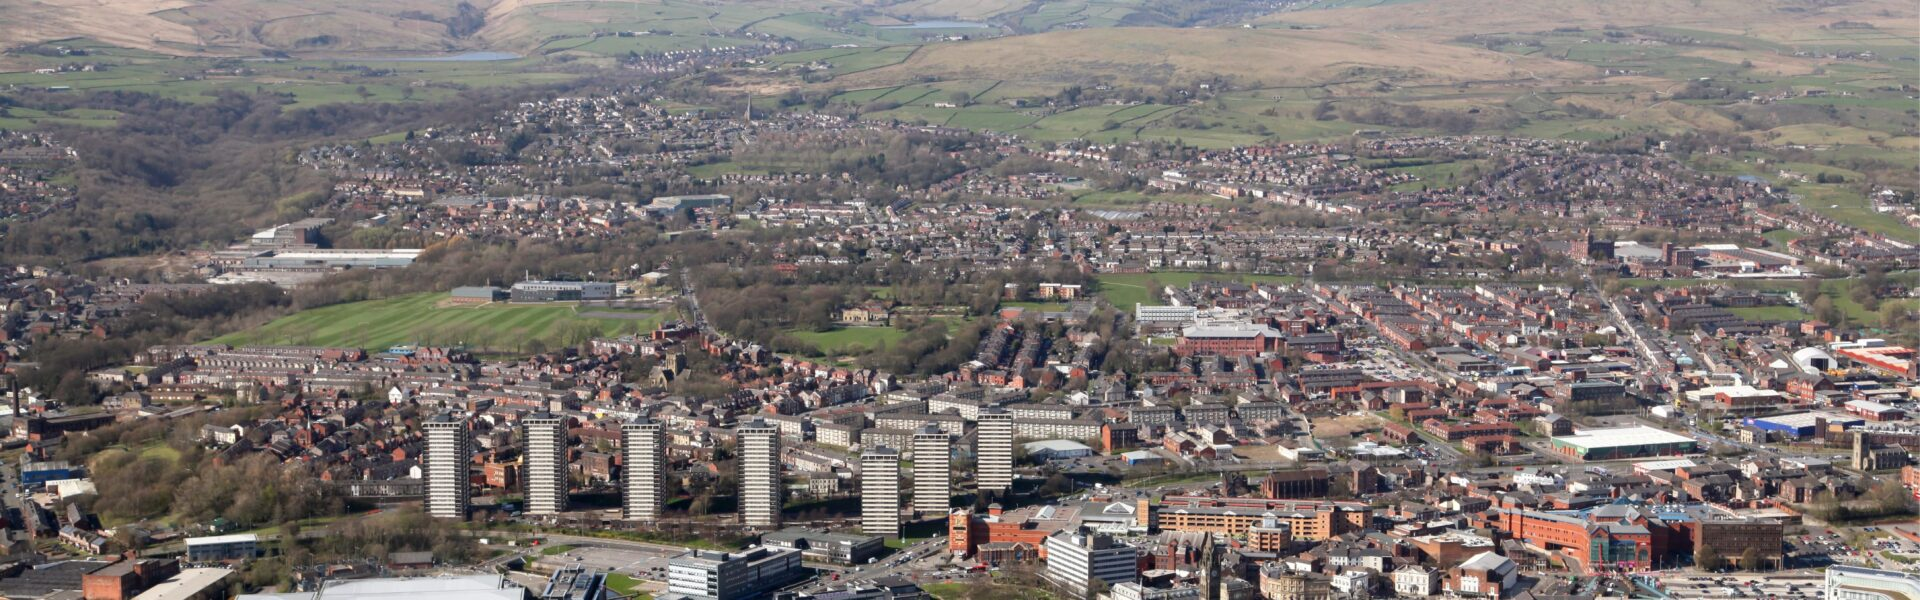 Aerial view of Rochdale, UK